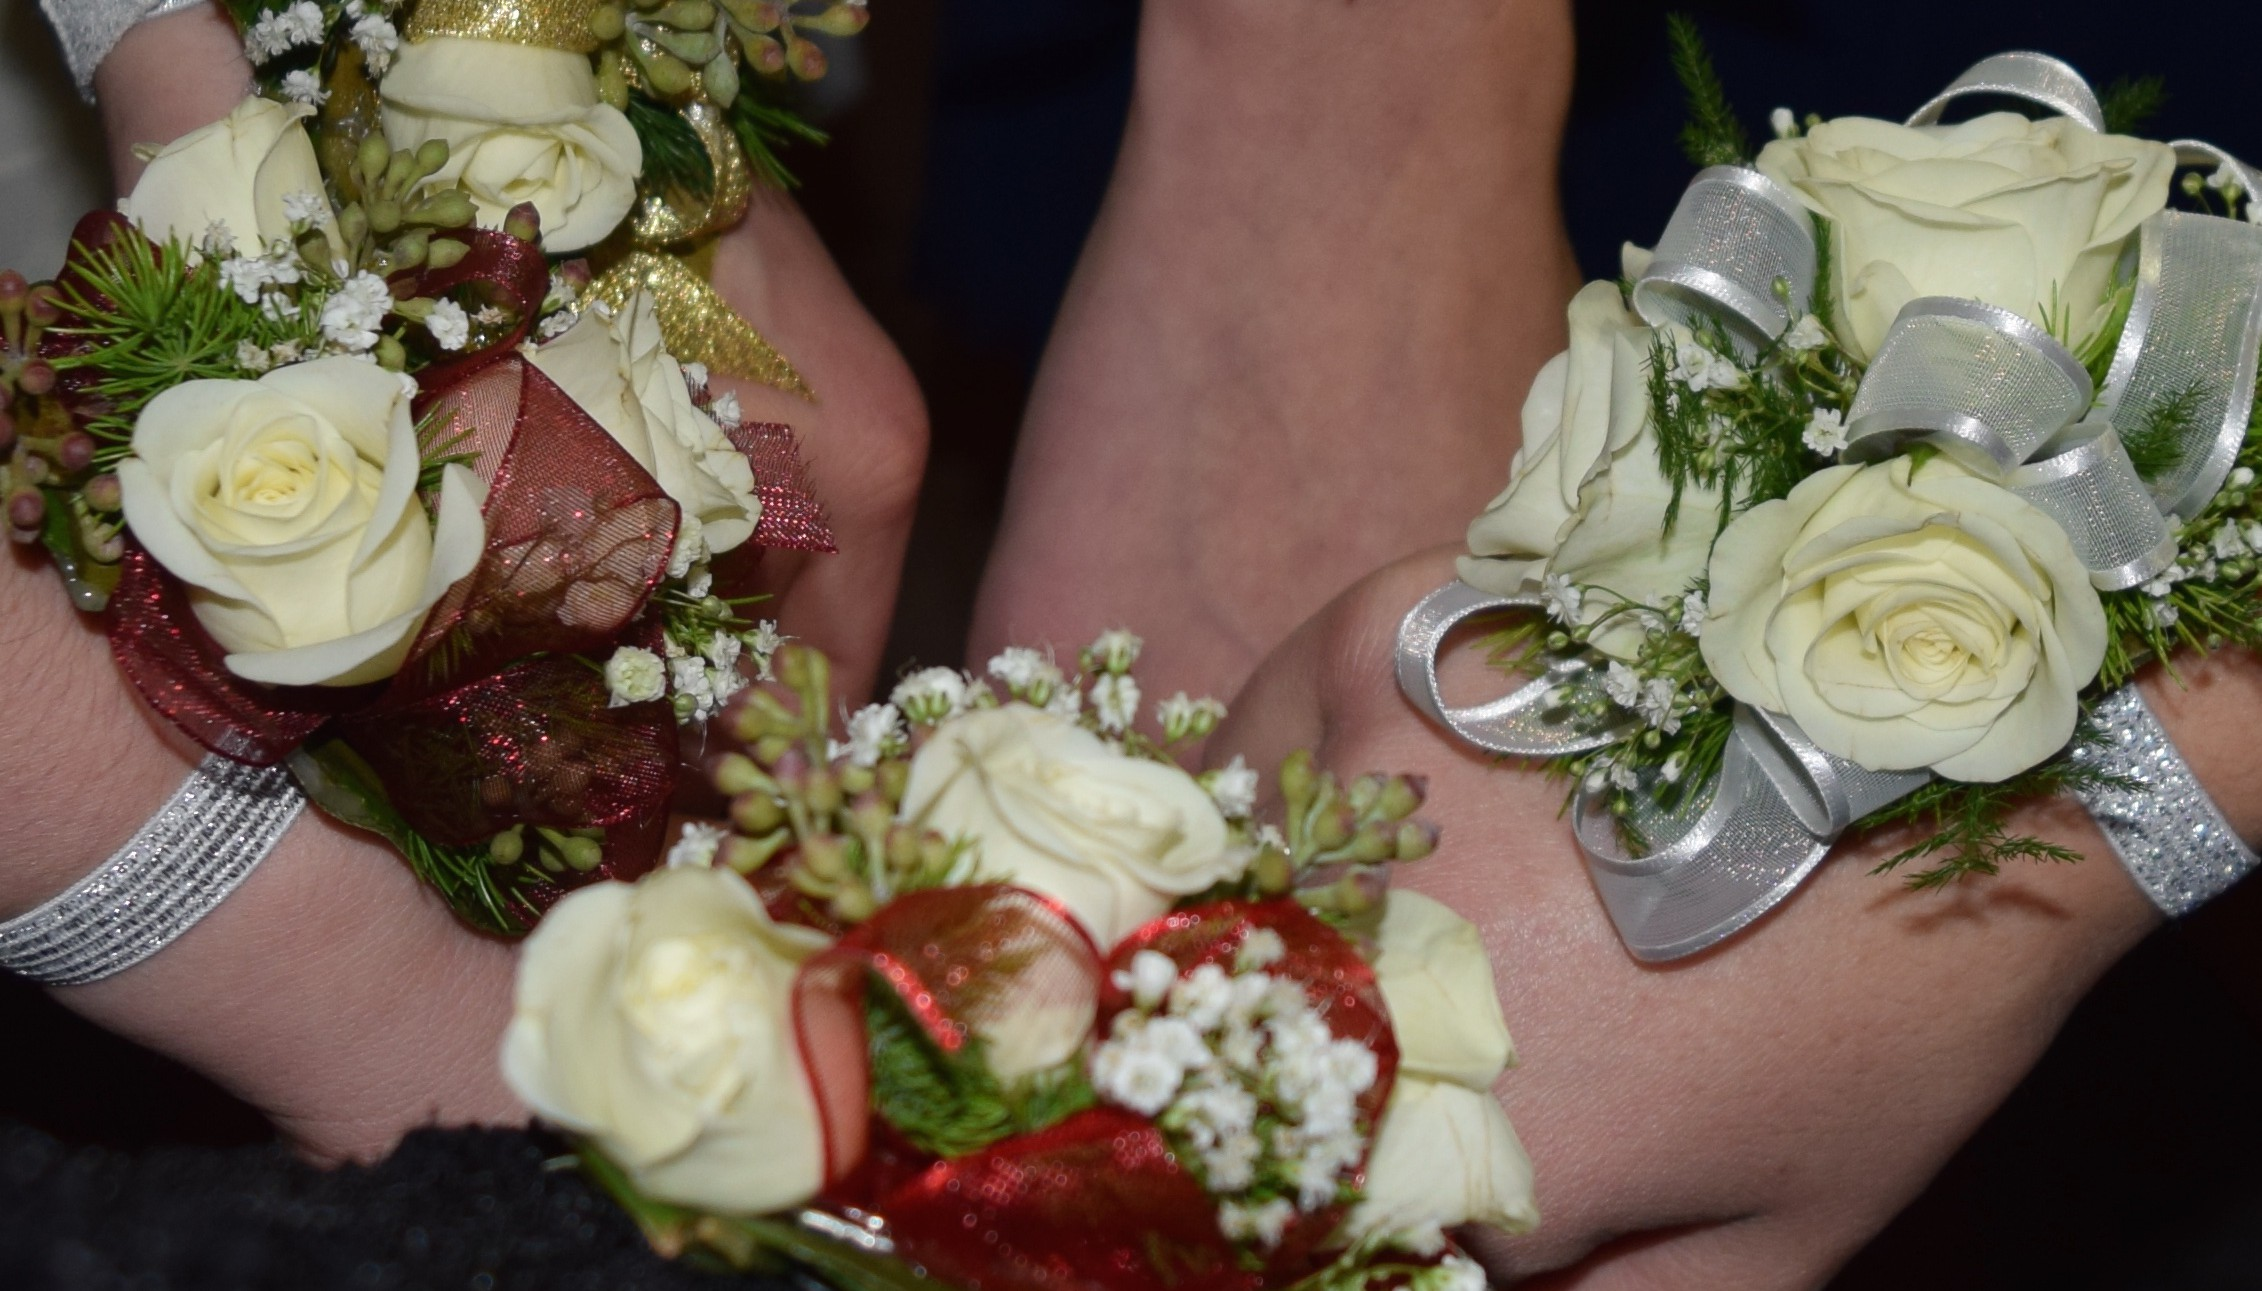 Floral design class offers alternative to purchasing prom flowers floral design class offers alternative to purchasing prom flowers blue devil hub izmirmasajfo